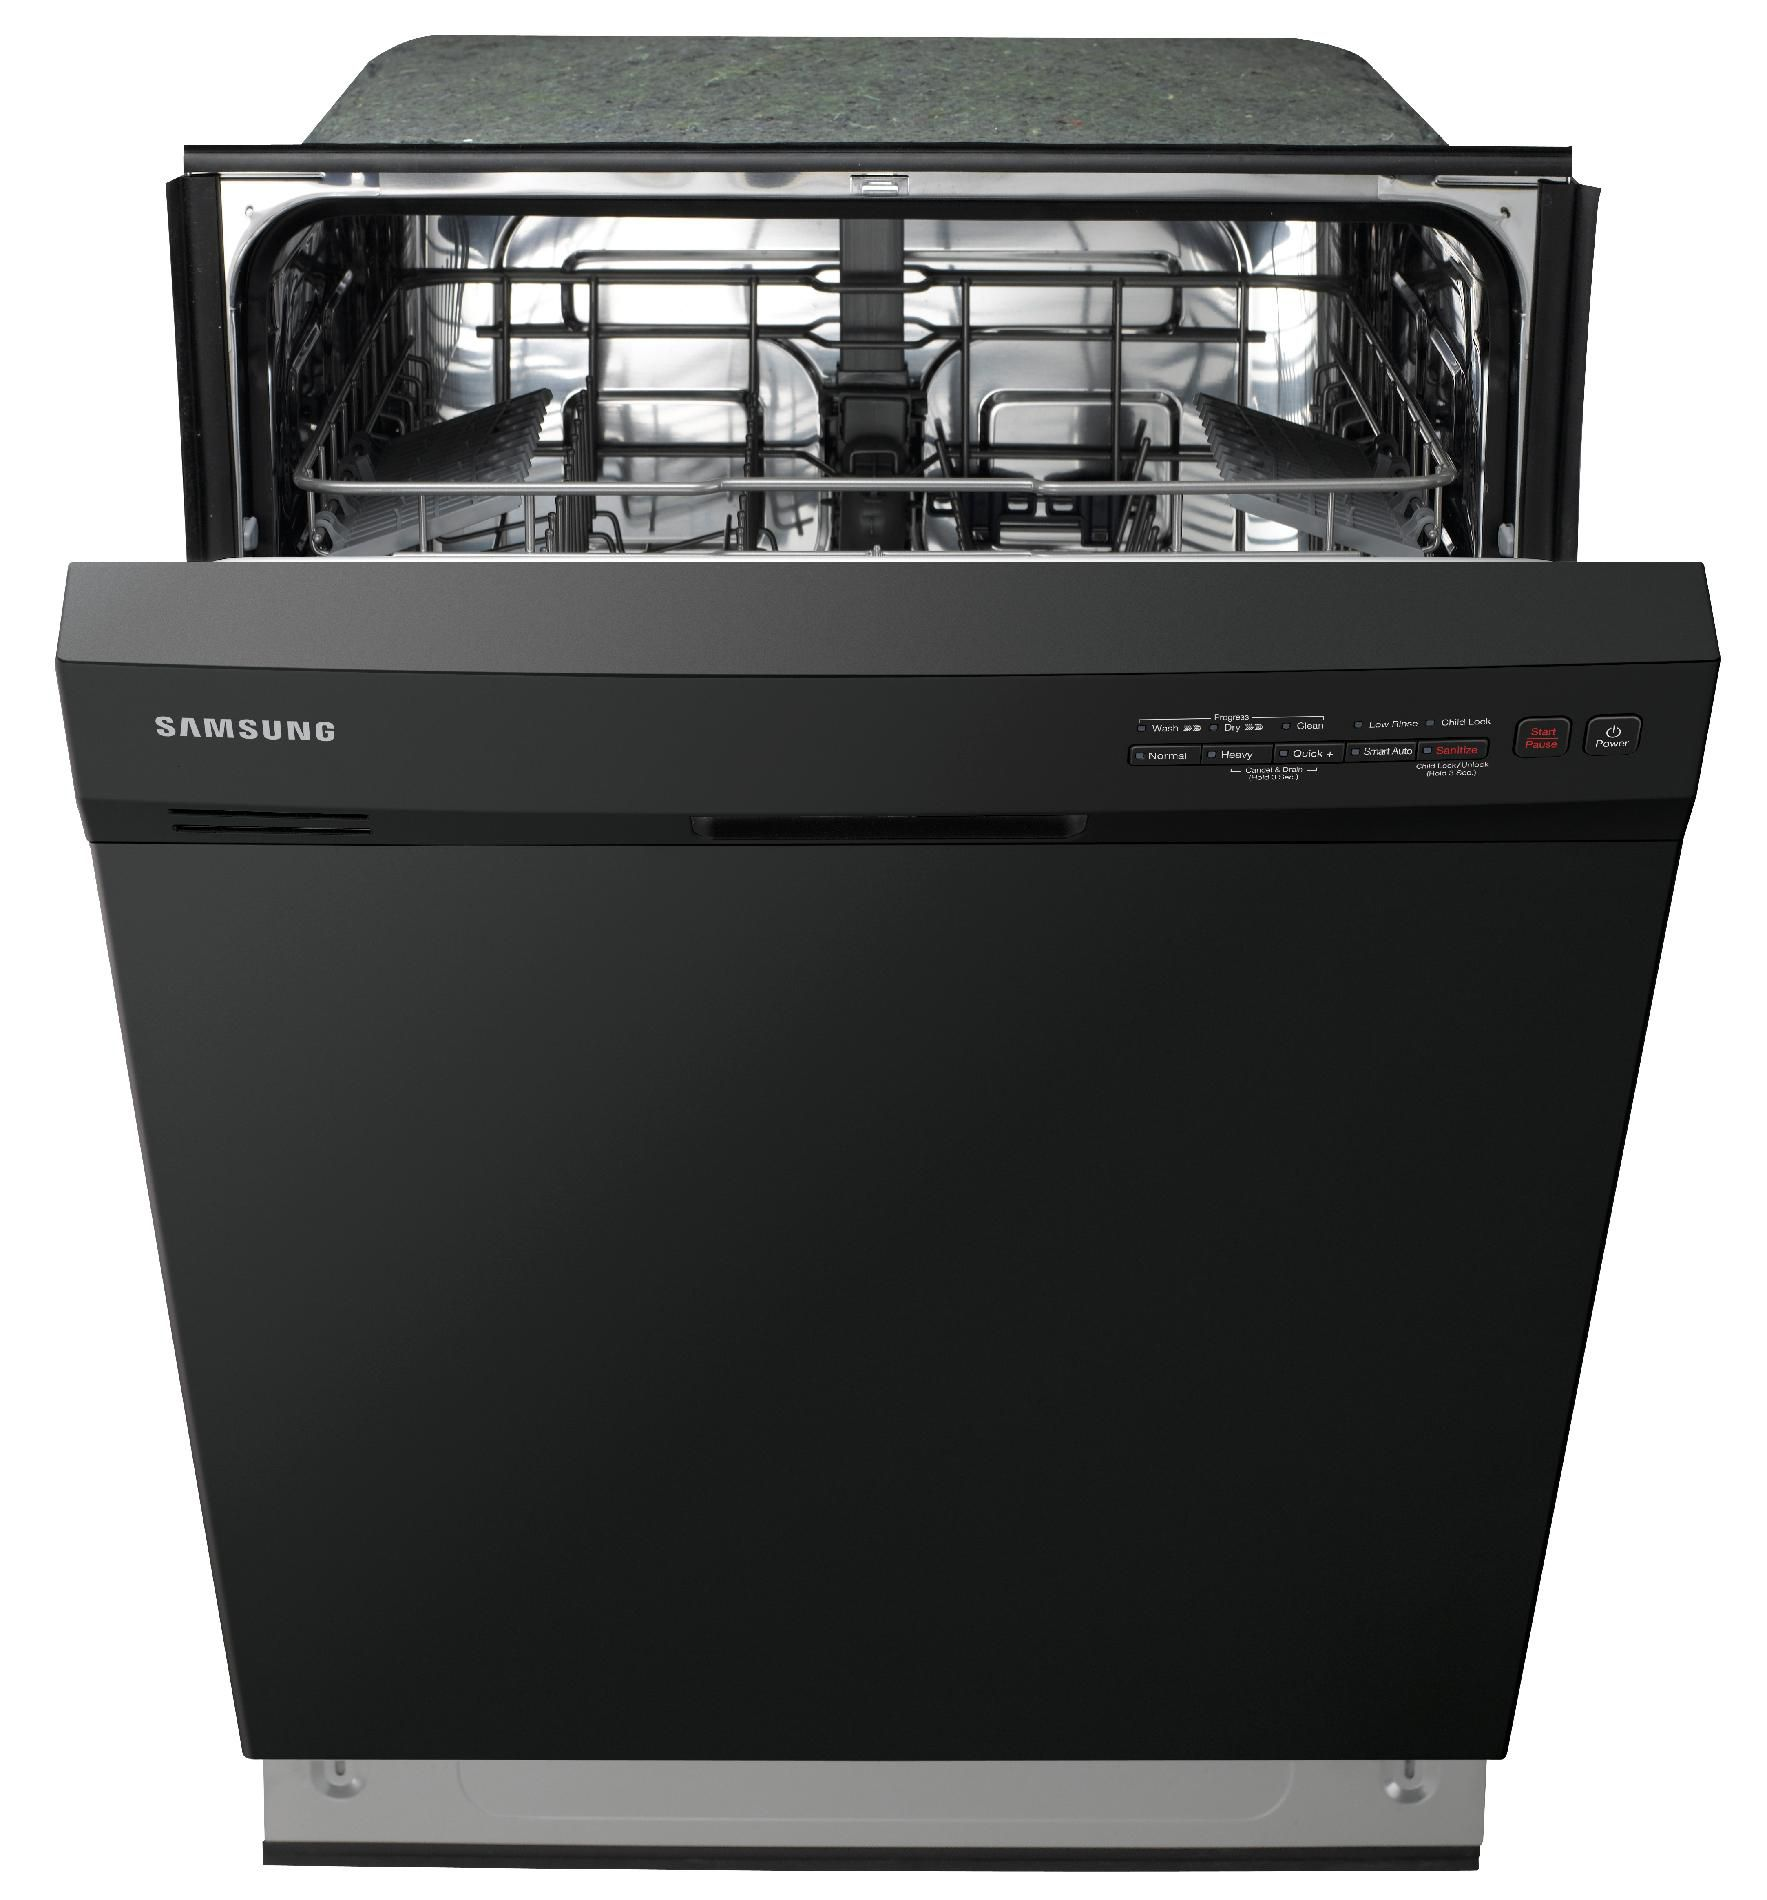 "Samsung 24"" Built-in 4-Cycle Dishwasher - Black"